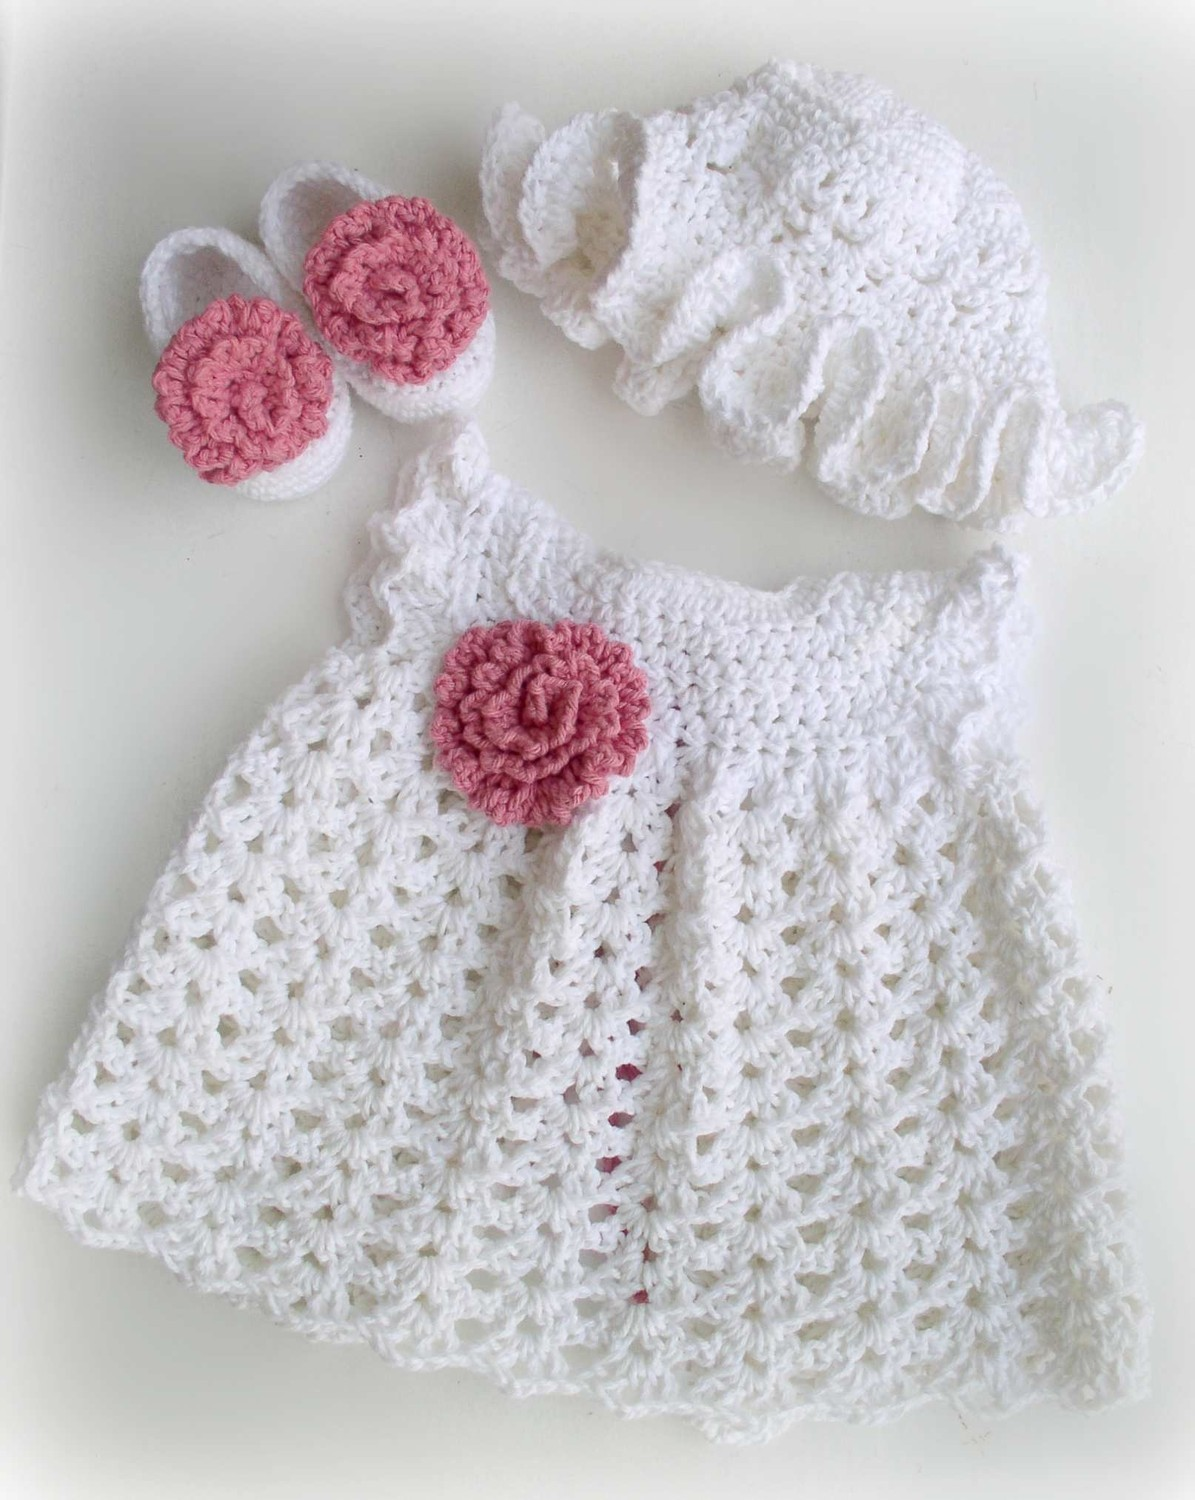 10 Cute Winter Outfits for Baby Girl 2015 10 Cute Winter Outfits for Baby Girl 2015 Winter Outfits for Baby Girl 2015 4